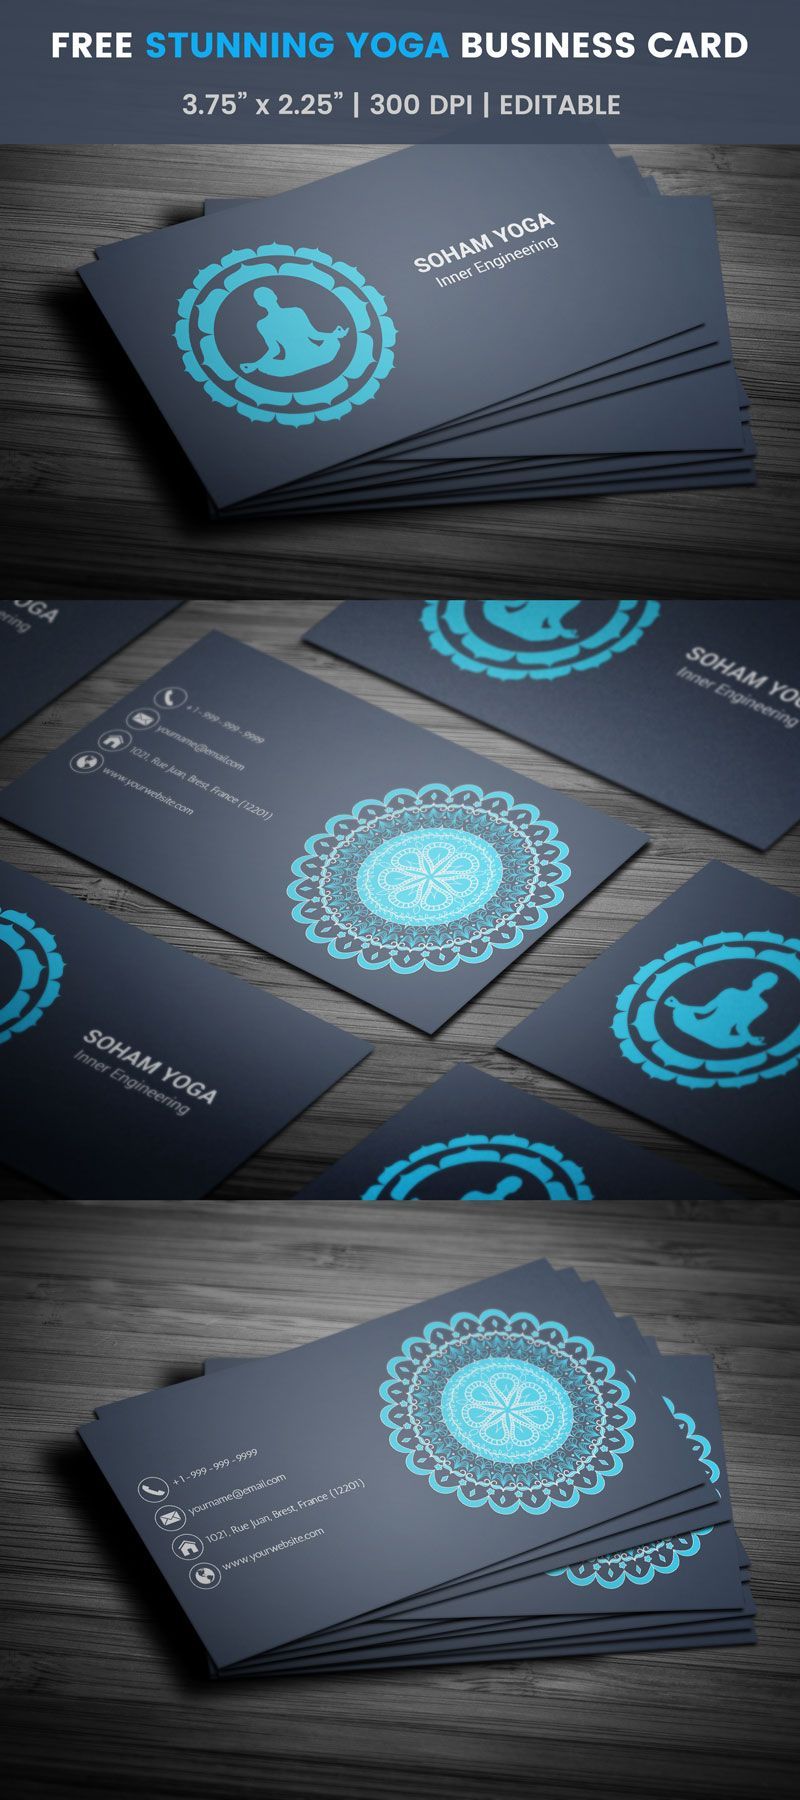 Free Yoga Class Business Card | Business cards, Yoga and Business